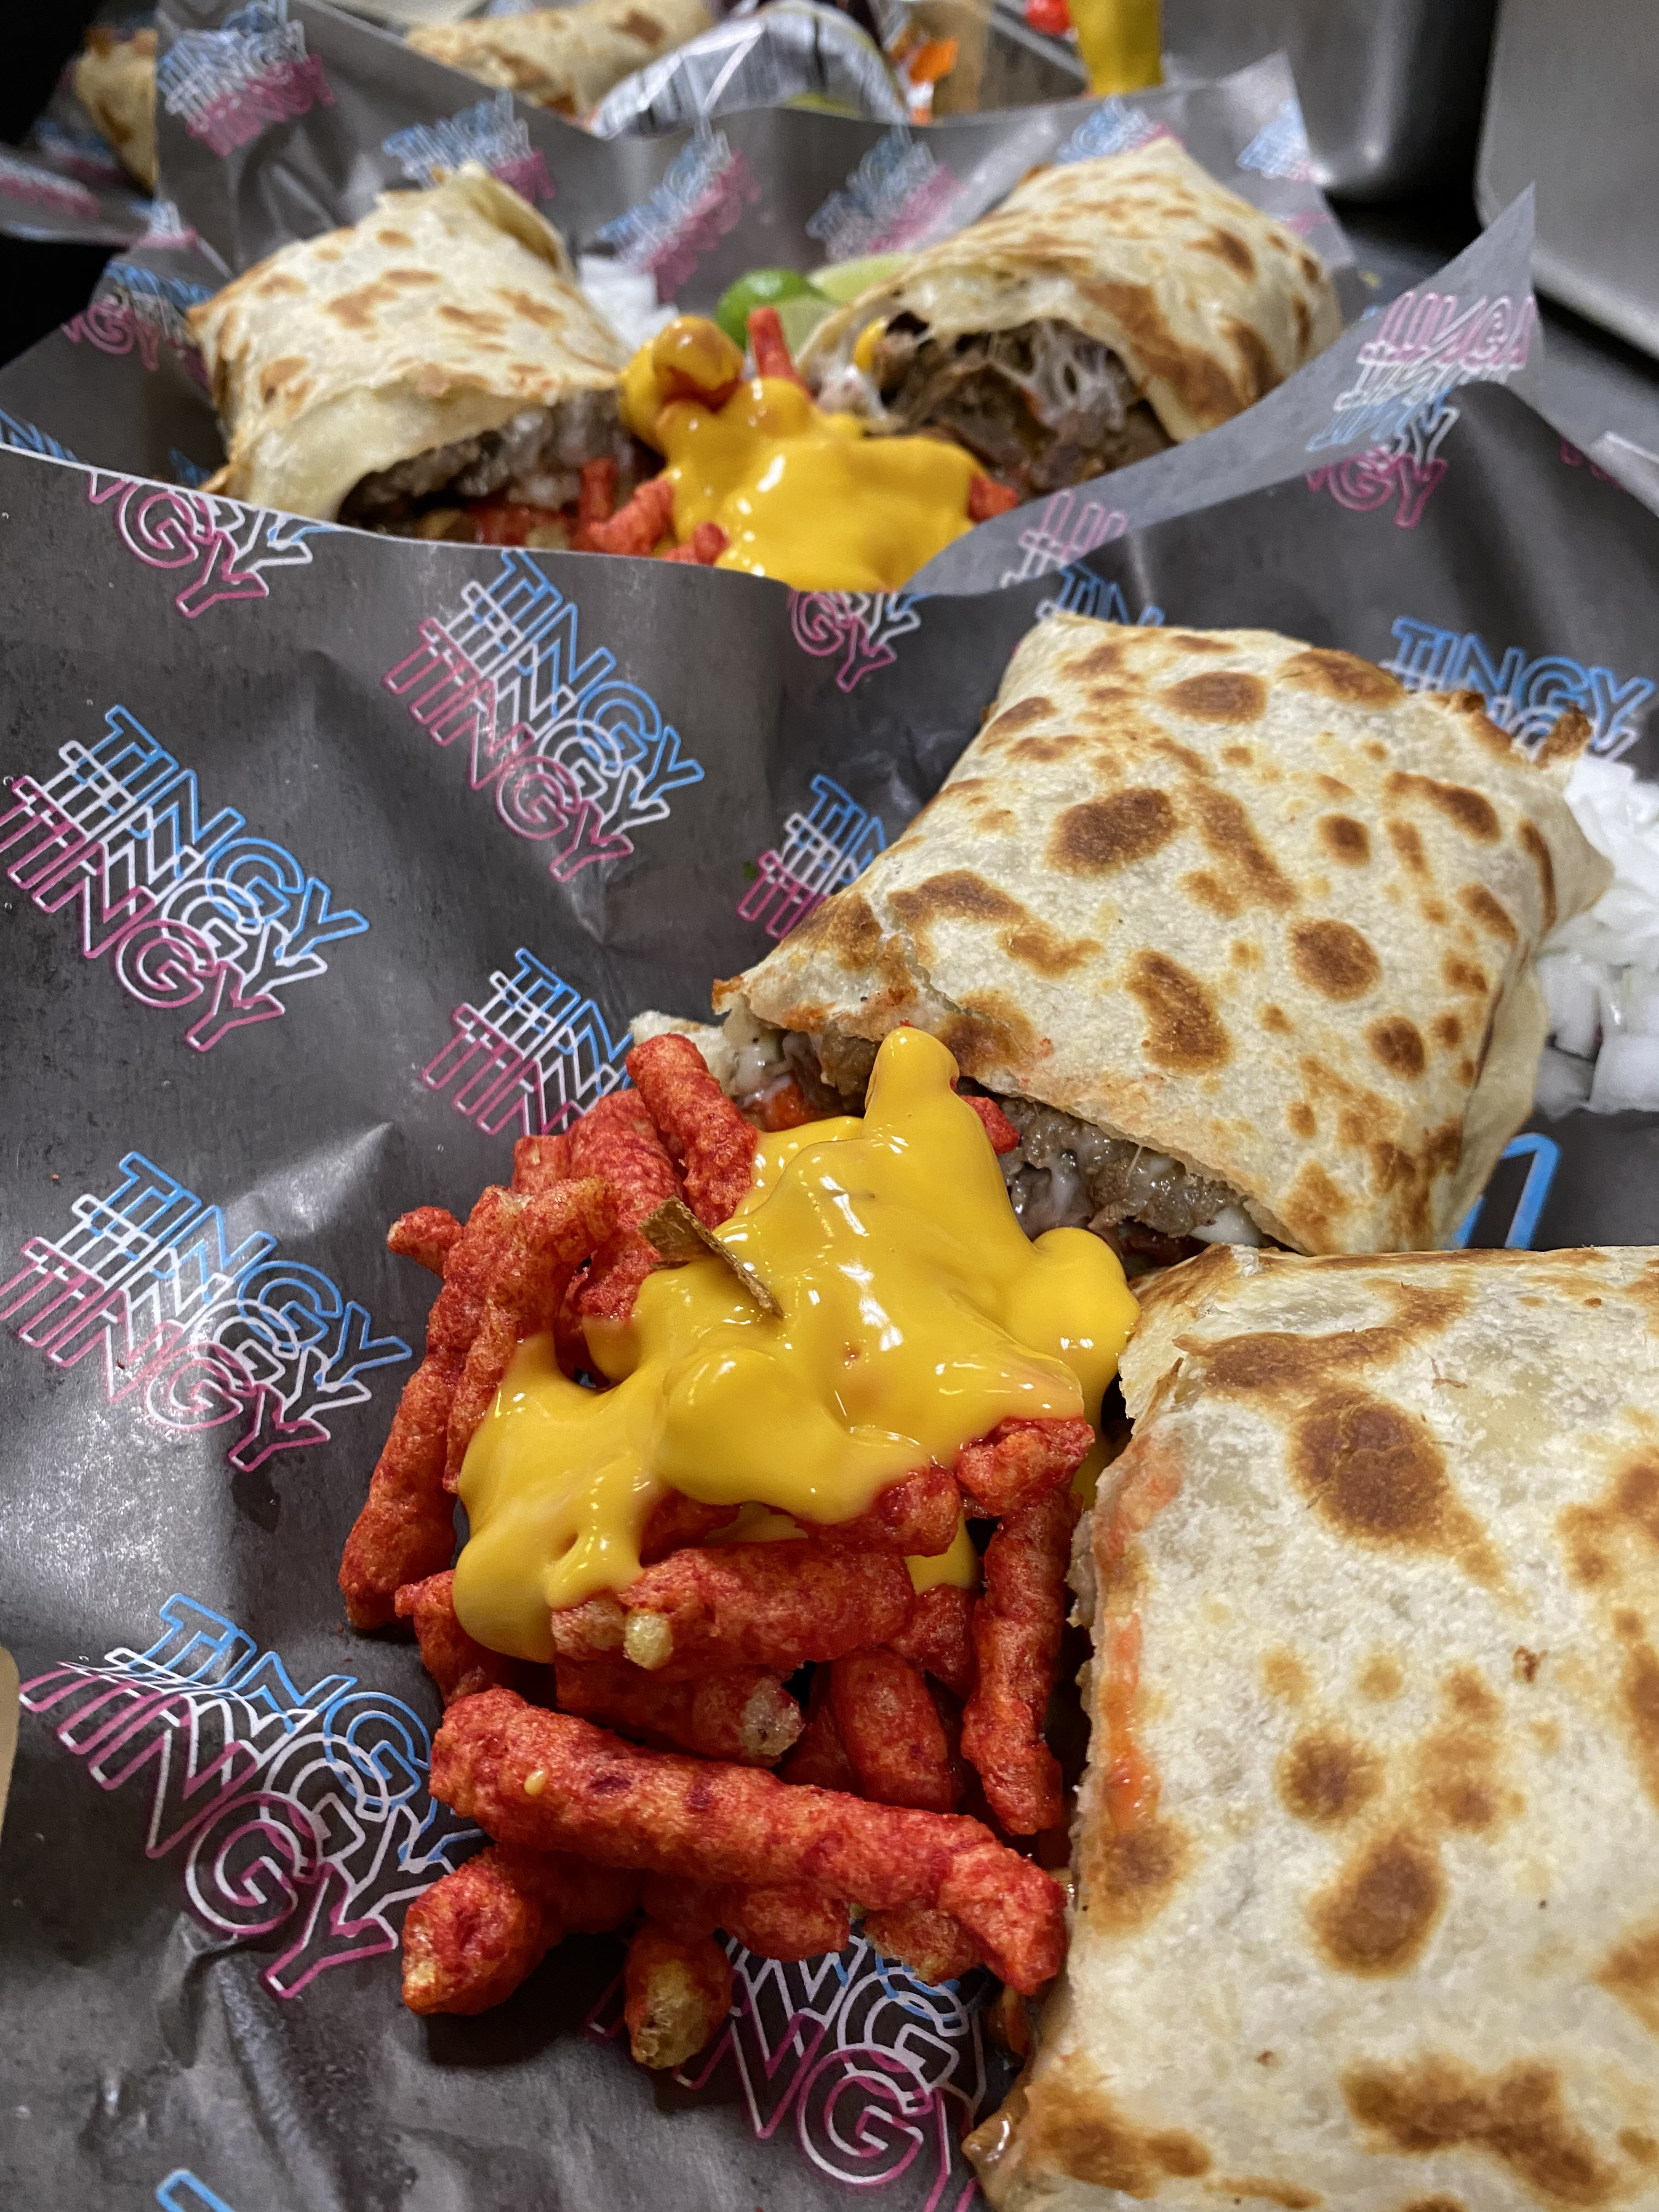 A pile of crunchy red Cheetos covered in yellow cheese next to burrito halves